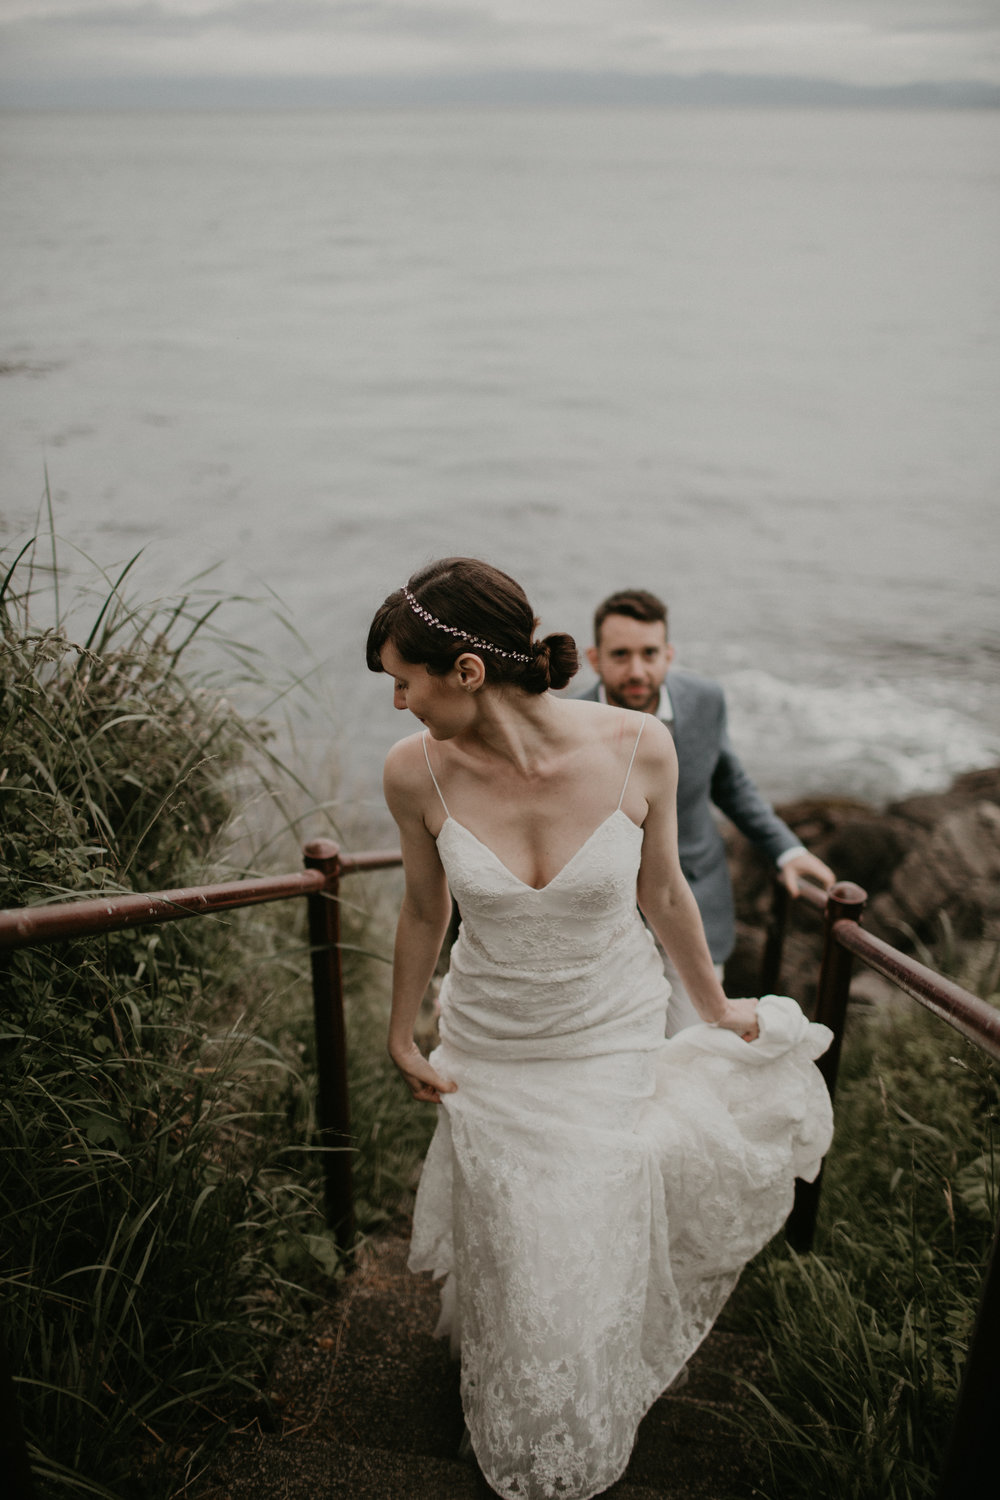 PNW-elopement-wedding-engagement-olympic national park-port angeles-hurricane ridge-lake crescent-kayla dawn photography- photographer-photography-kayladawnphoto-313.jpg